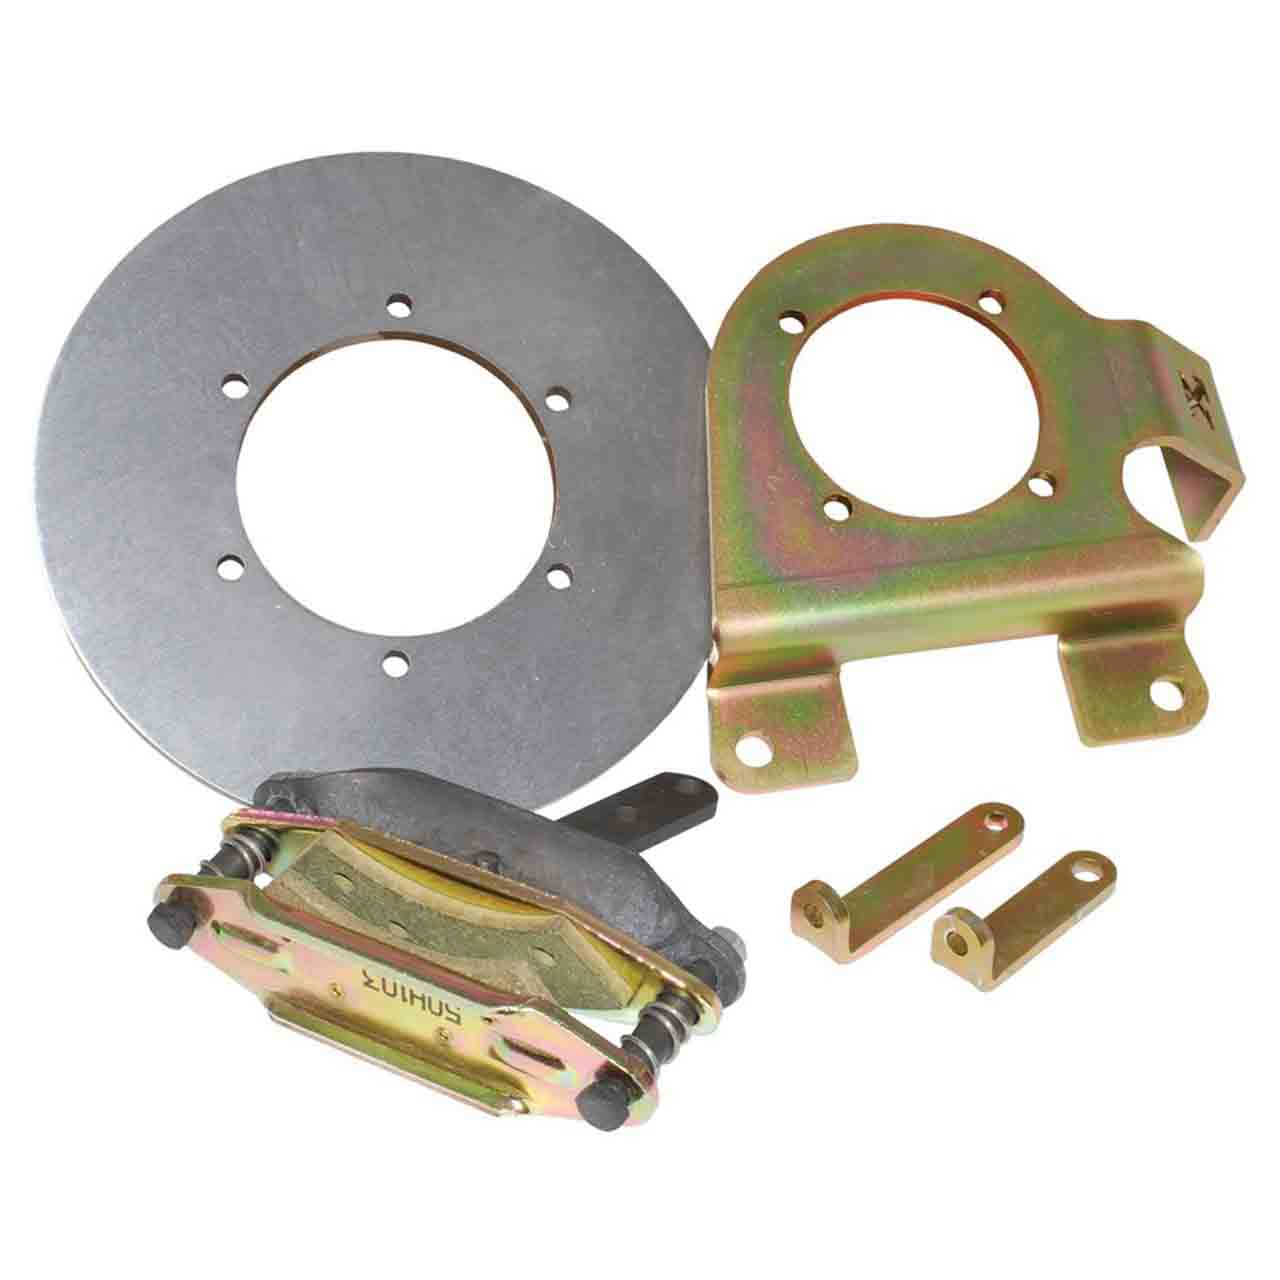 Kit Conversione Freno A Mano Series 1 2 3 Land Rover GR2-07949